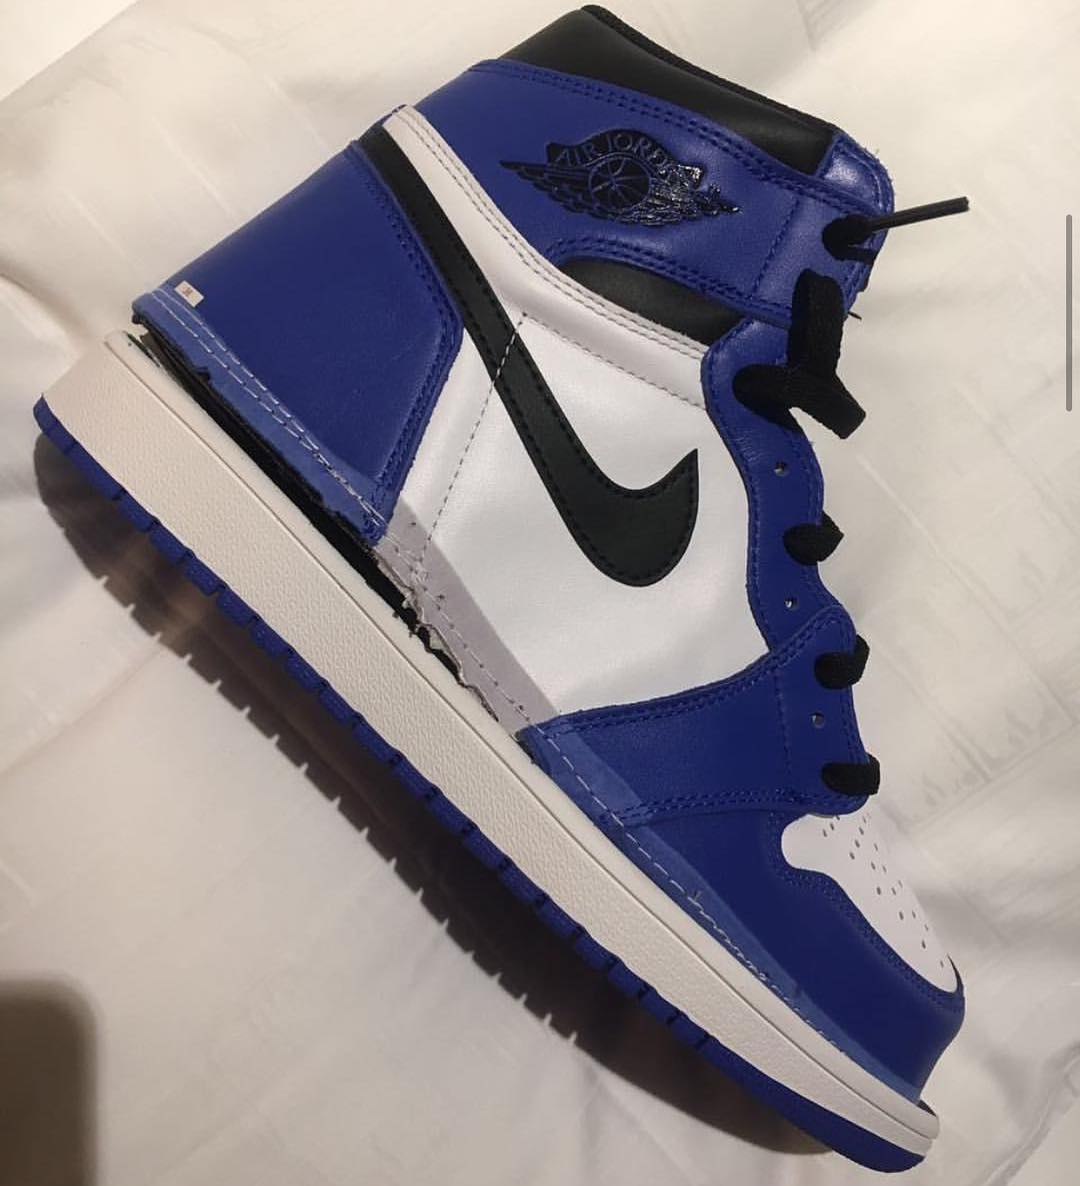 nike-air-jordan-1-game-royal-555088-403-release-2018